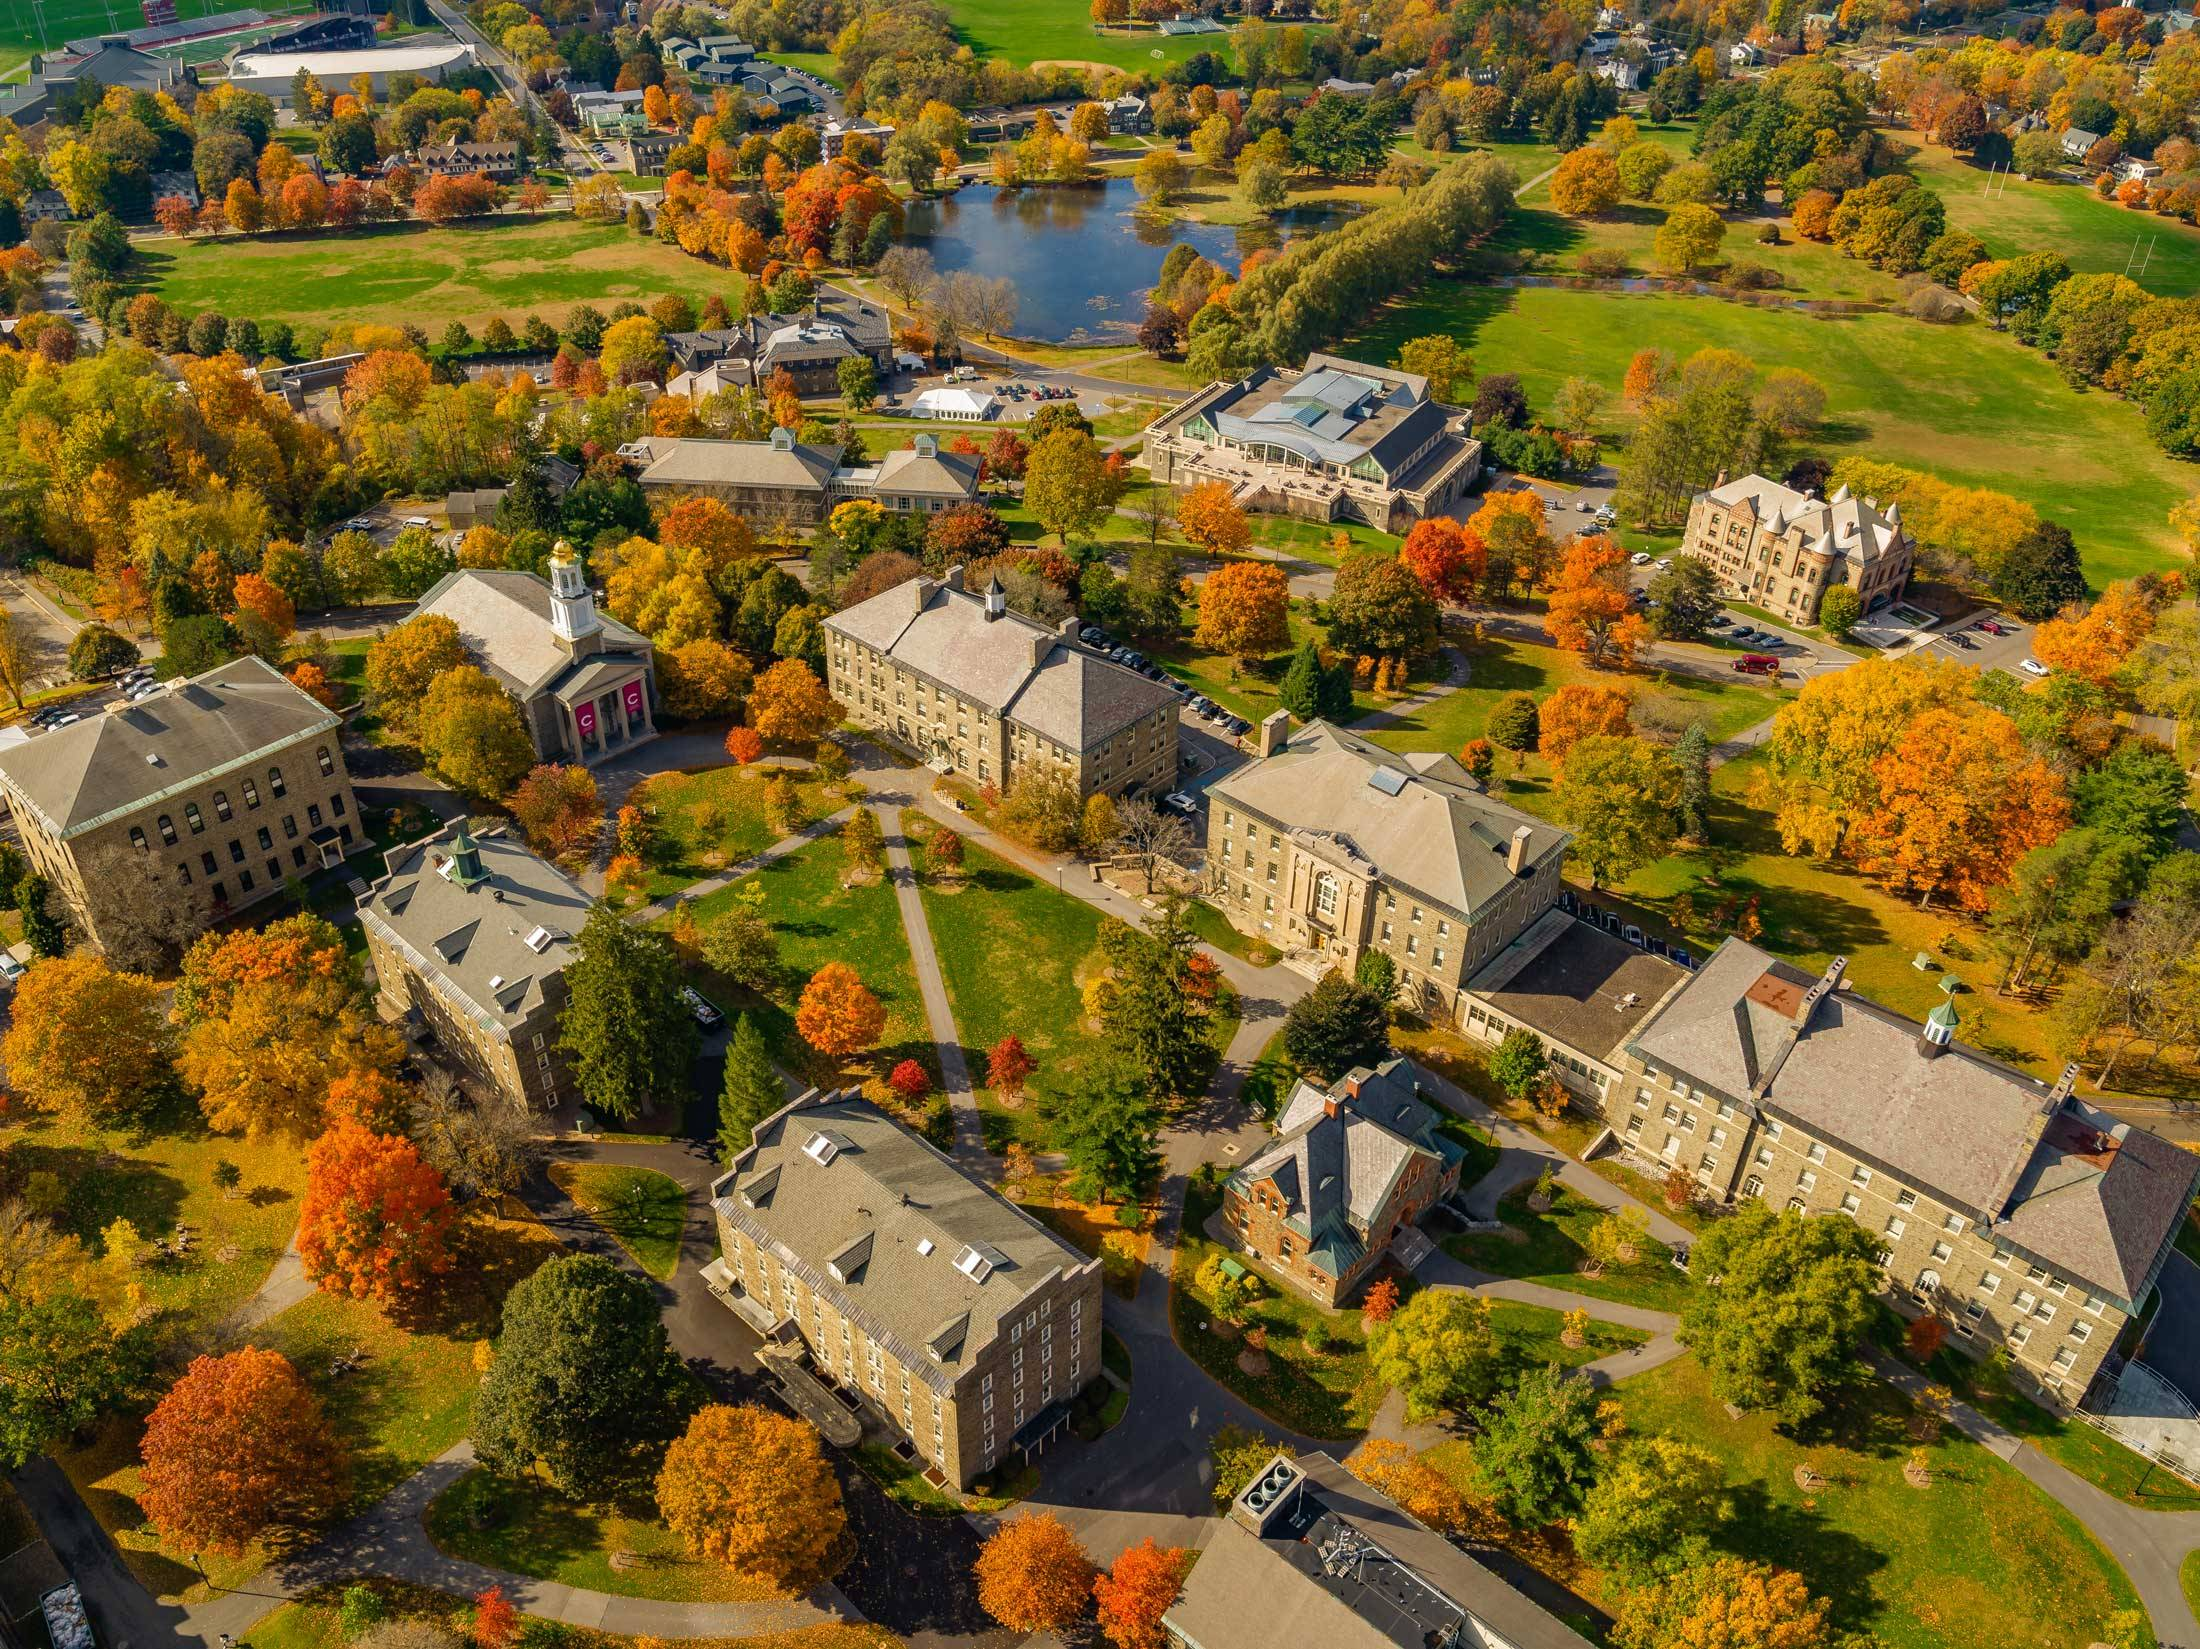 Aerial picture of campus in fall